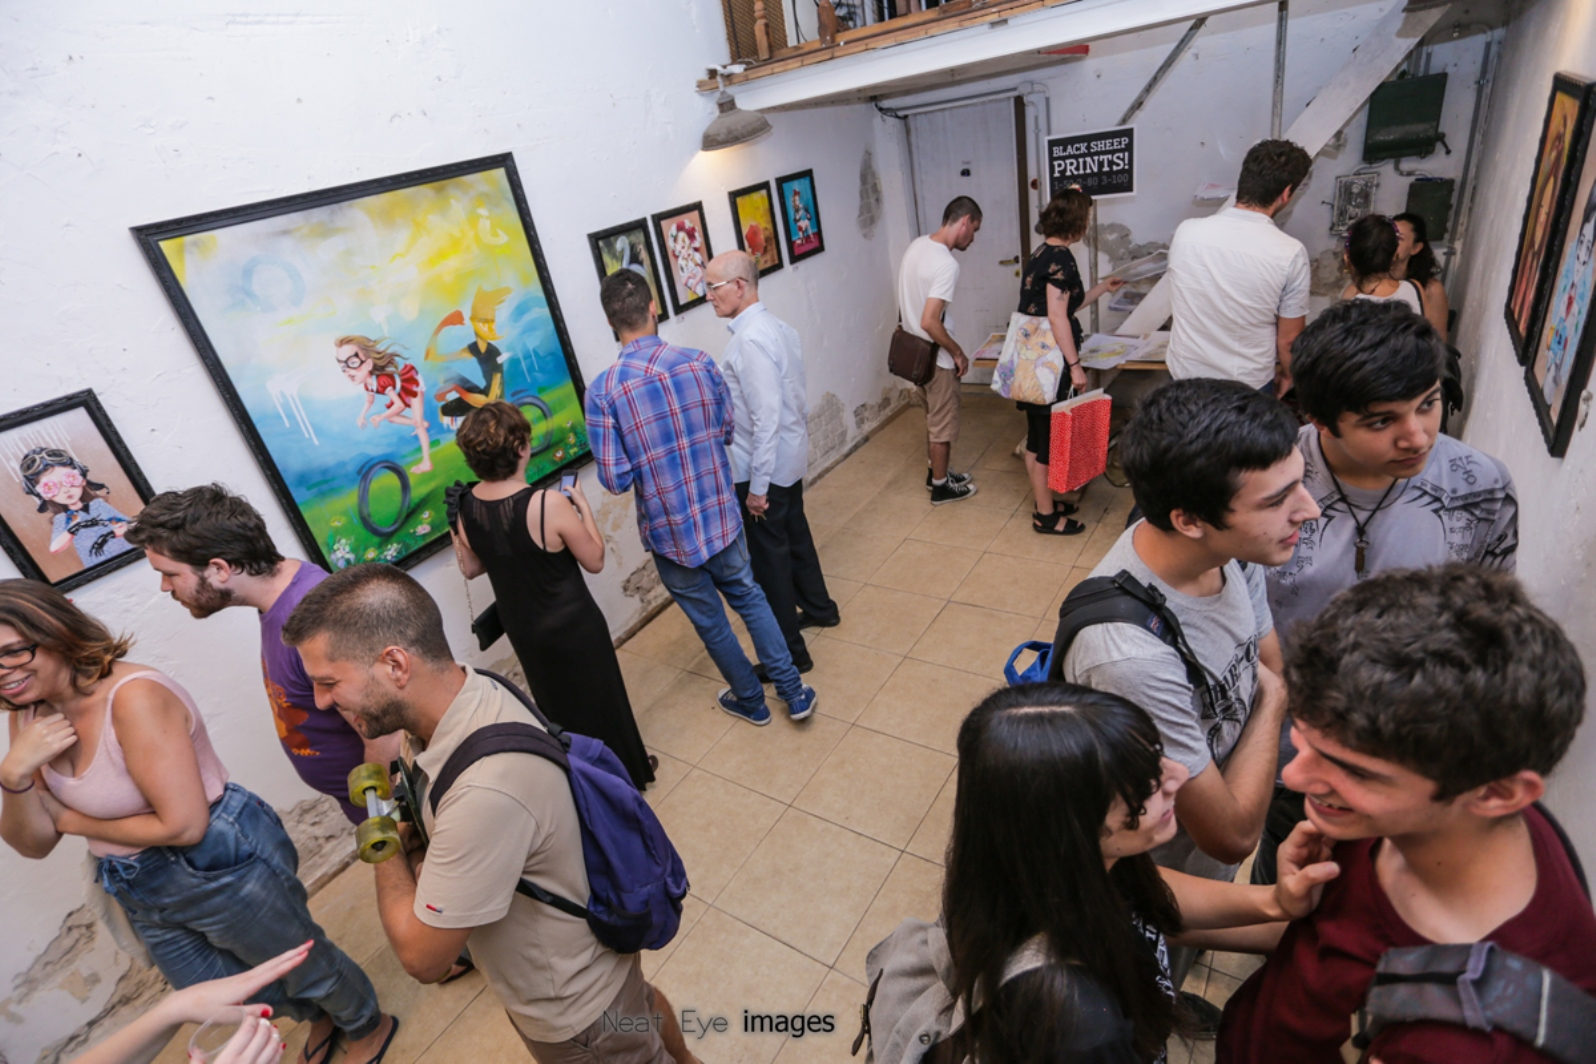 Patrons enjoying street artist Untay's show at Meshuna Gallery in Florentin. Photo by Neat Eye Images